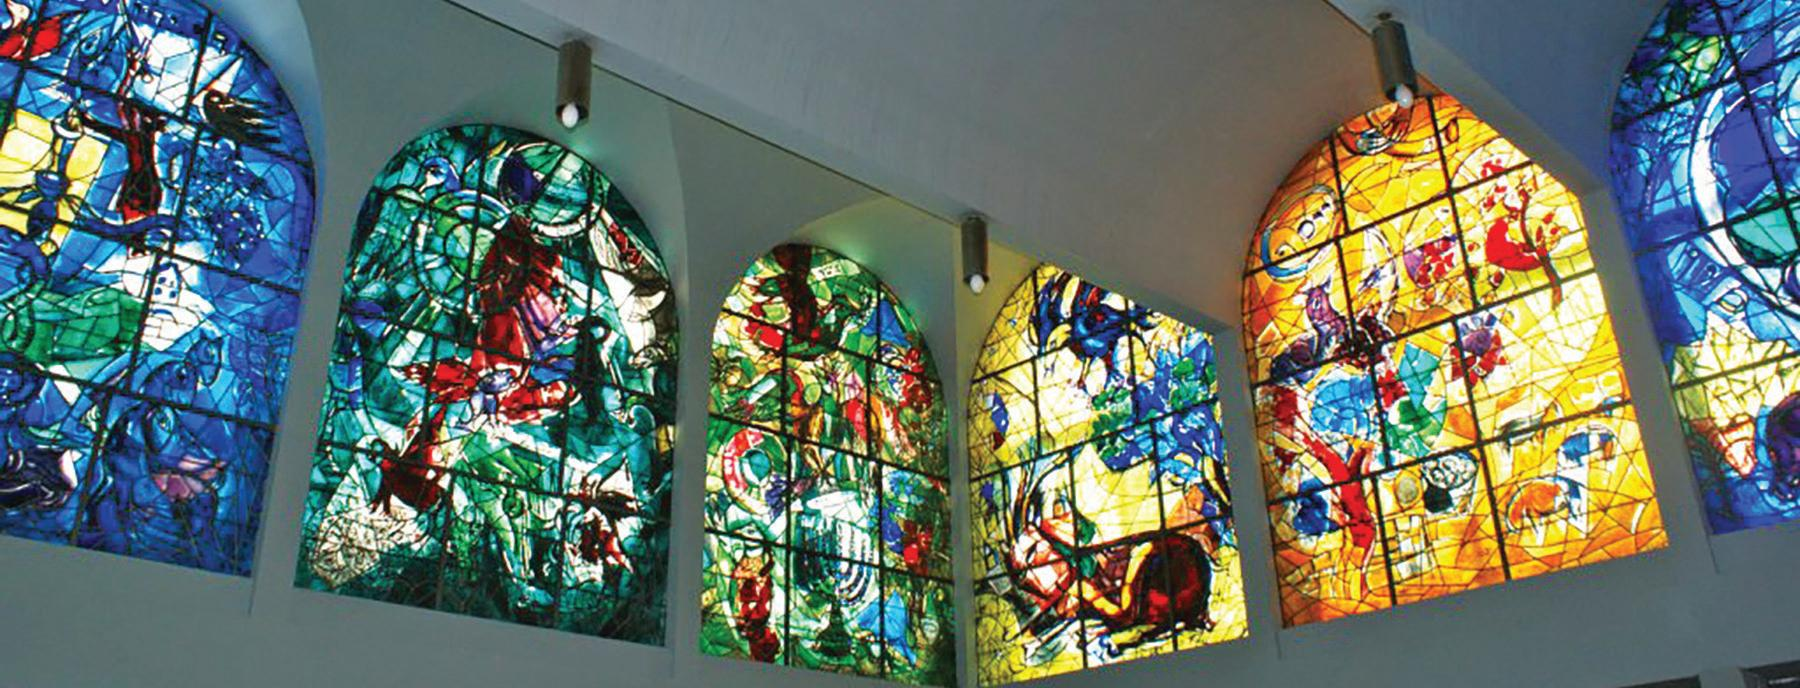 Page 22 of The Chagall Windows at Hadassah Hospital: Expressing Jewish Culture Through Stained Glass